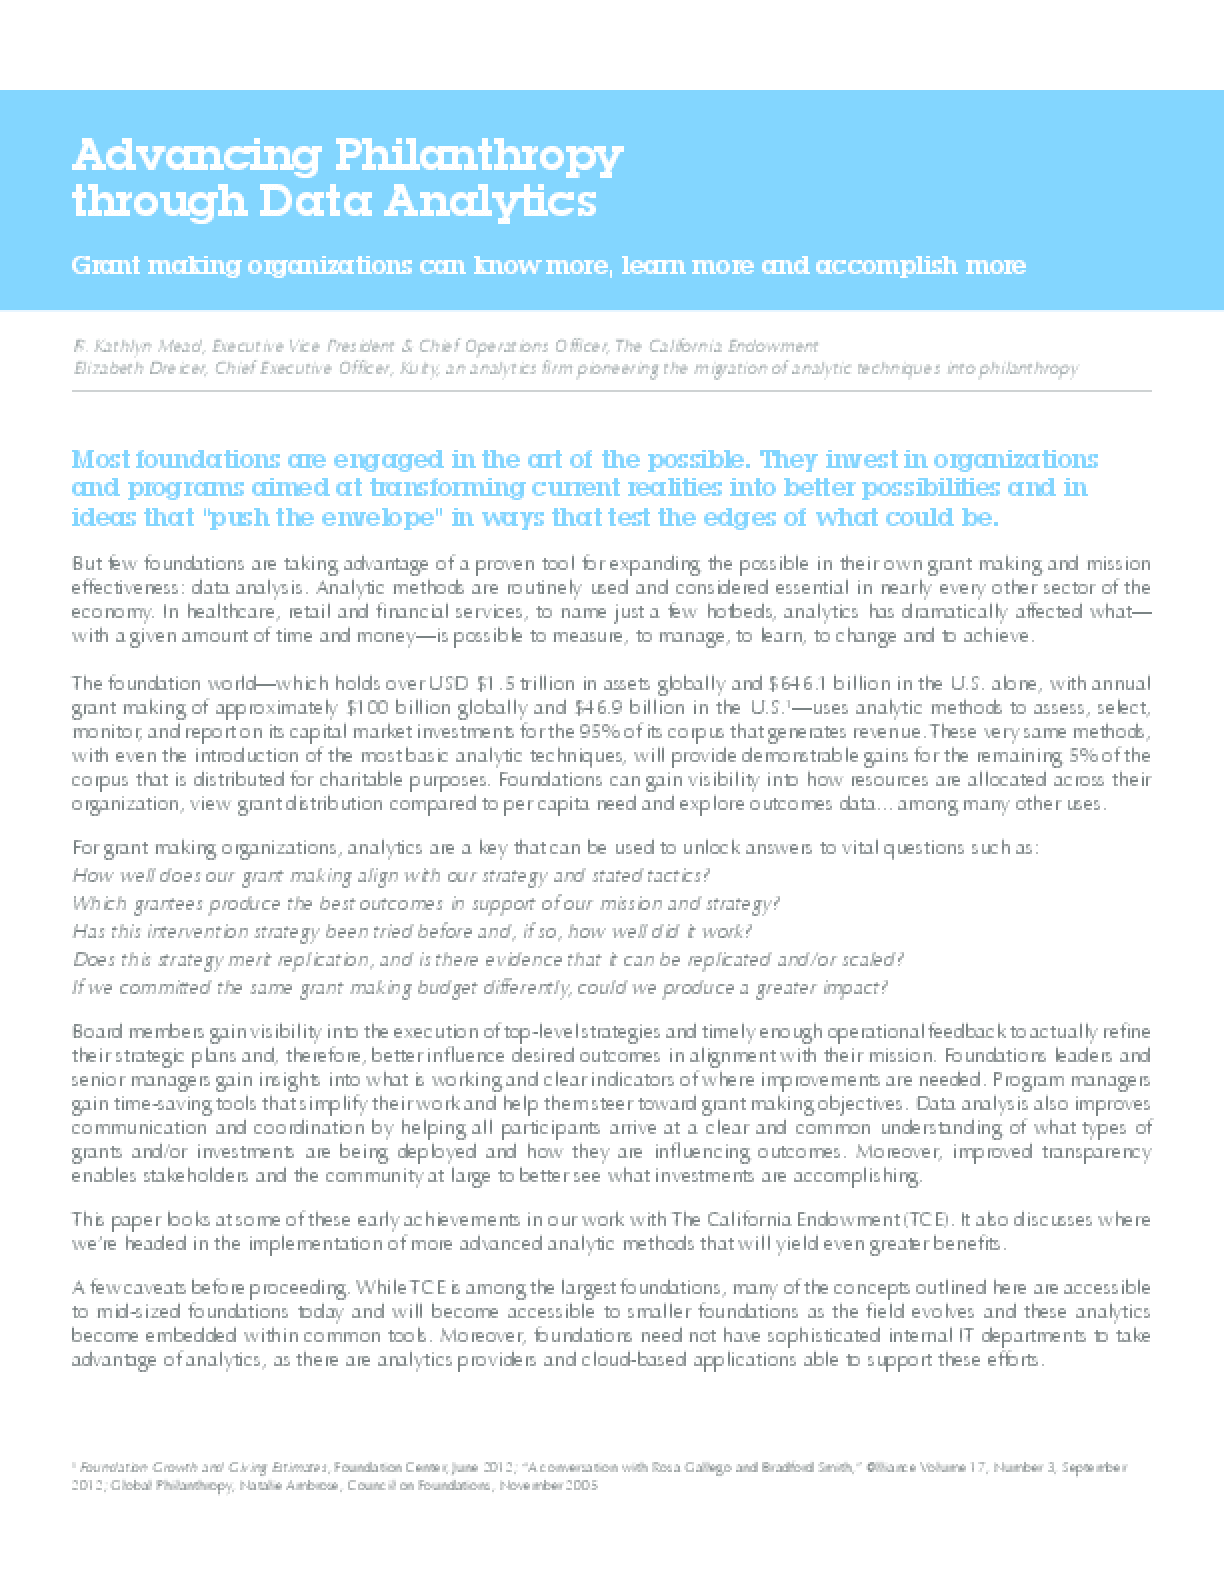 Advancing Philanthropy Through Data Analytics